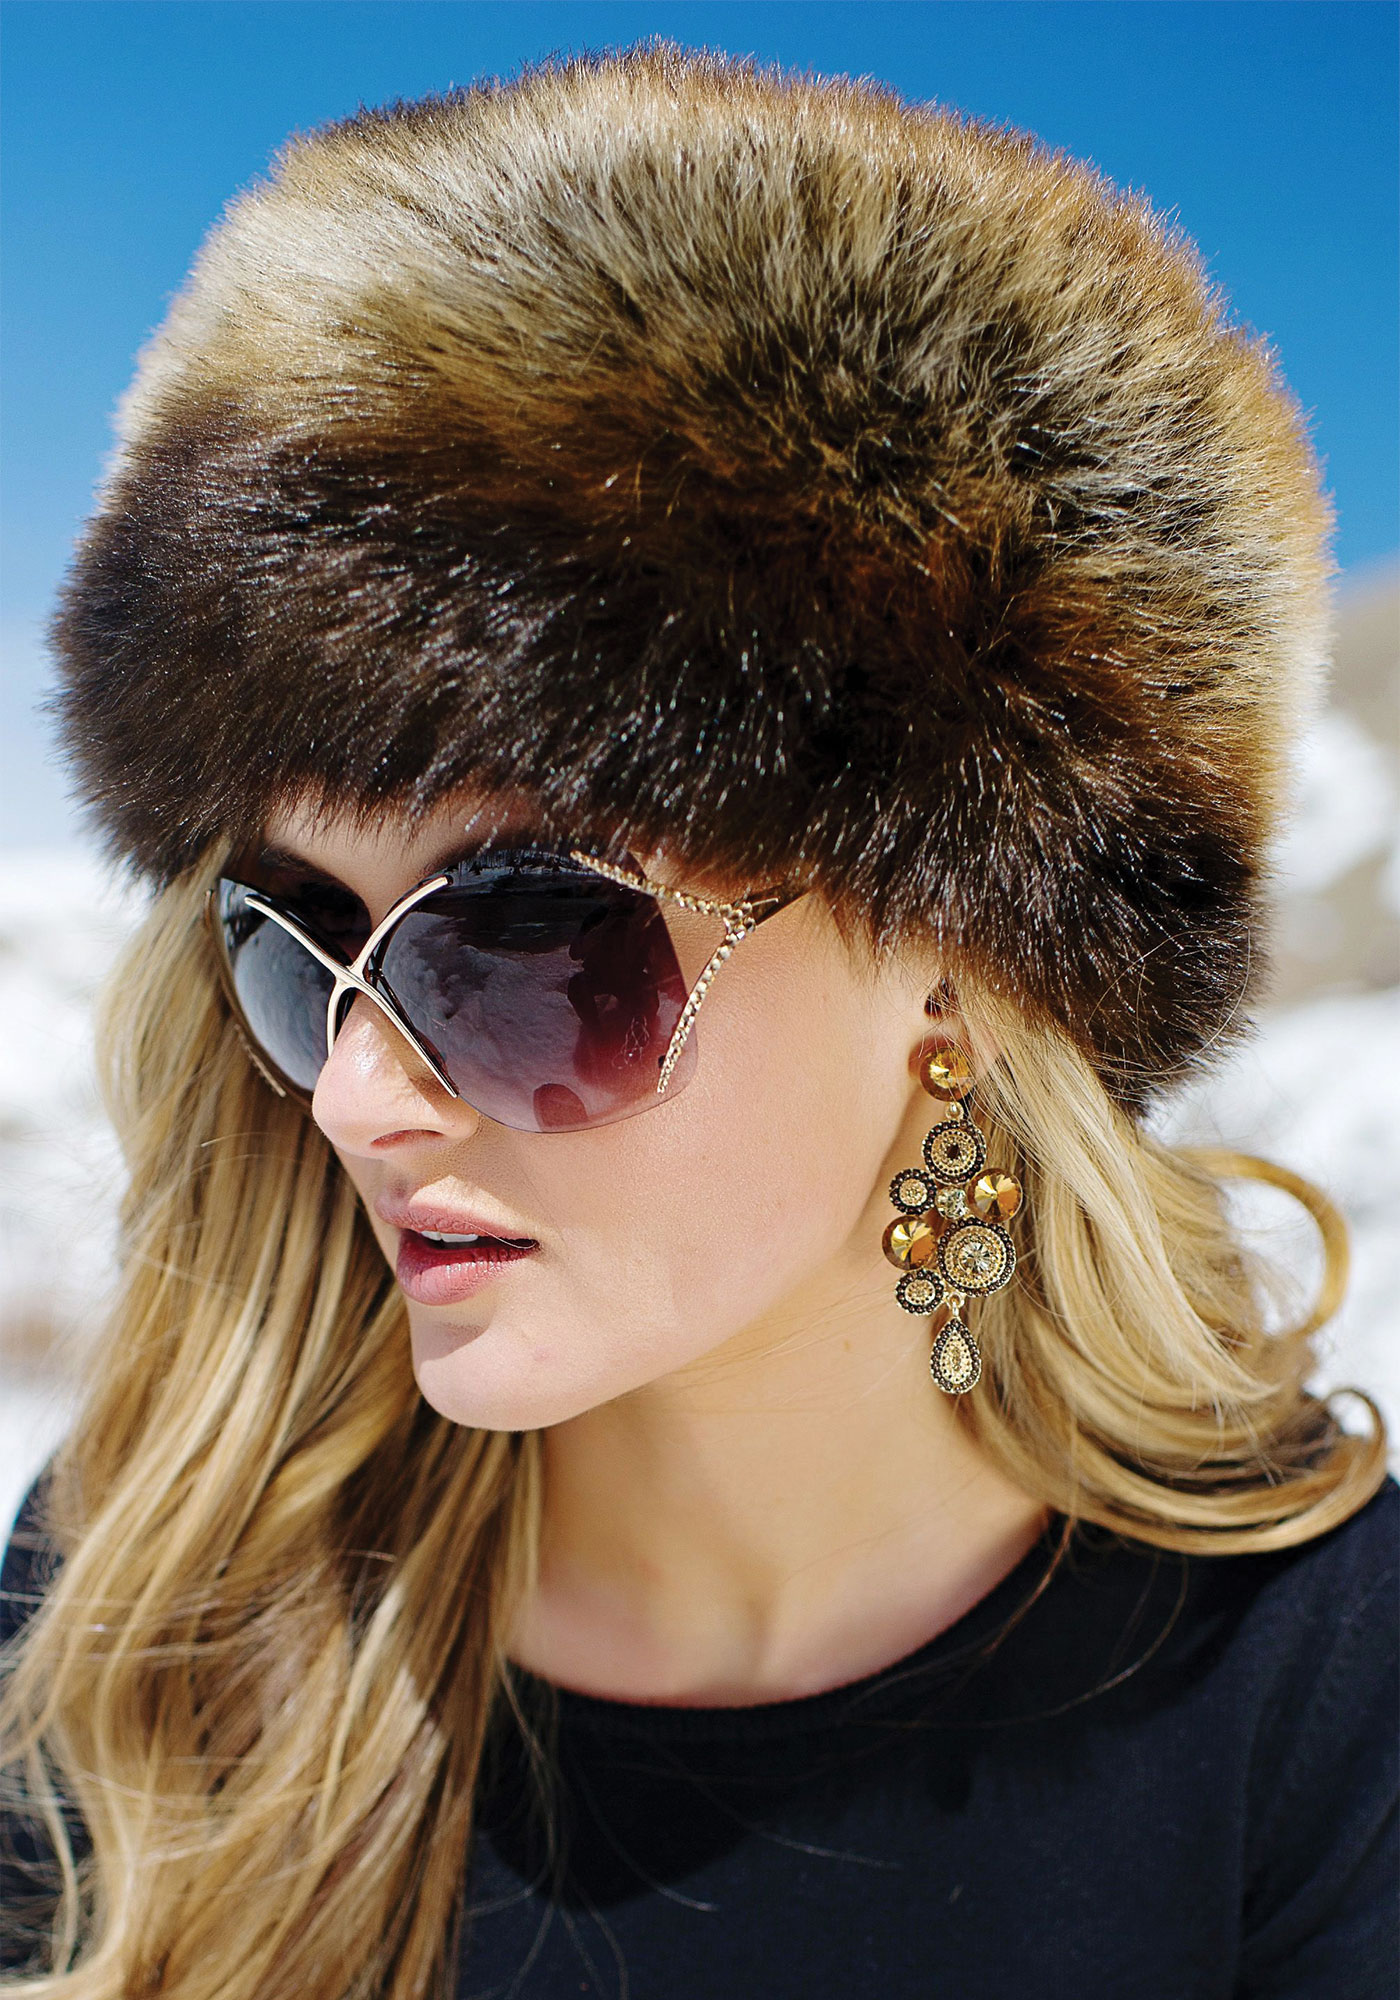 Women's Faux Fur Hat for Winter with Stretch Cossack Russion Style White Warm Cap $ 14 99 Prime. out of 5 stars 2. Futrzane. Faux Fox Fur Winter Mongolian Hat Women Pompom Cossack for Ladies. from $ 26 99 Prime. out of 5 stars QUEENFUR.